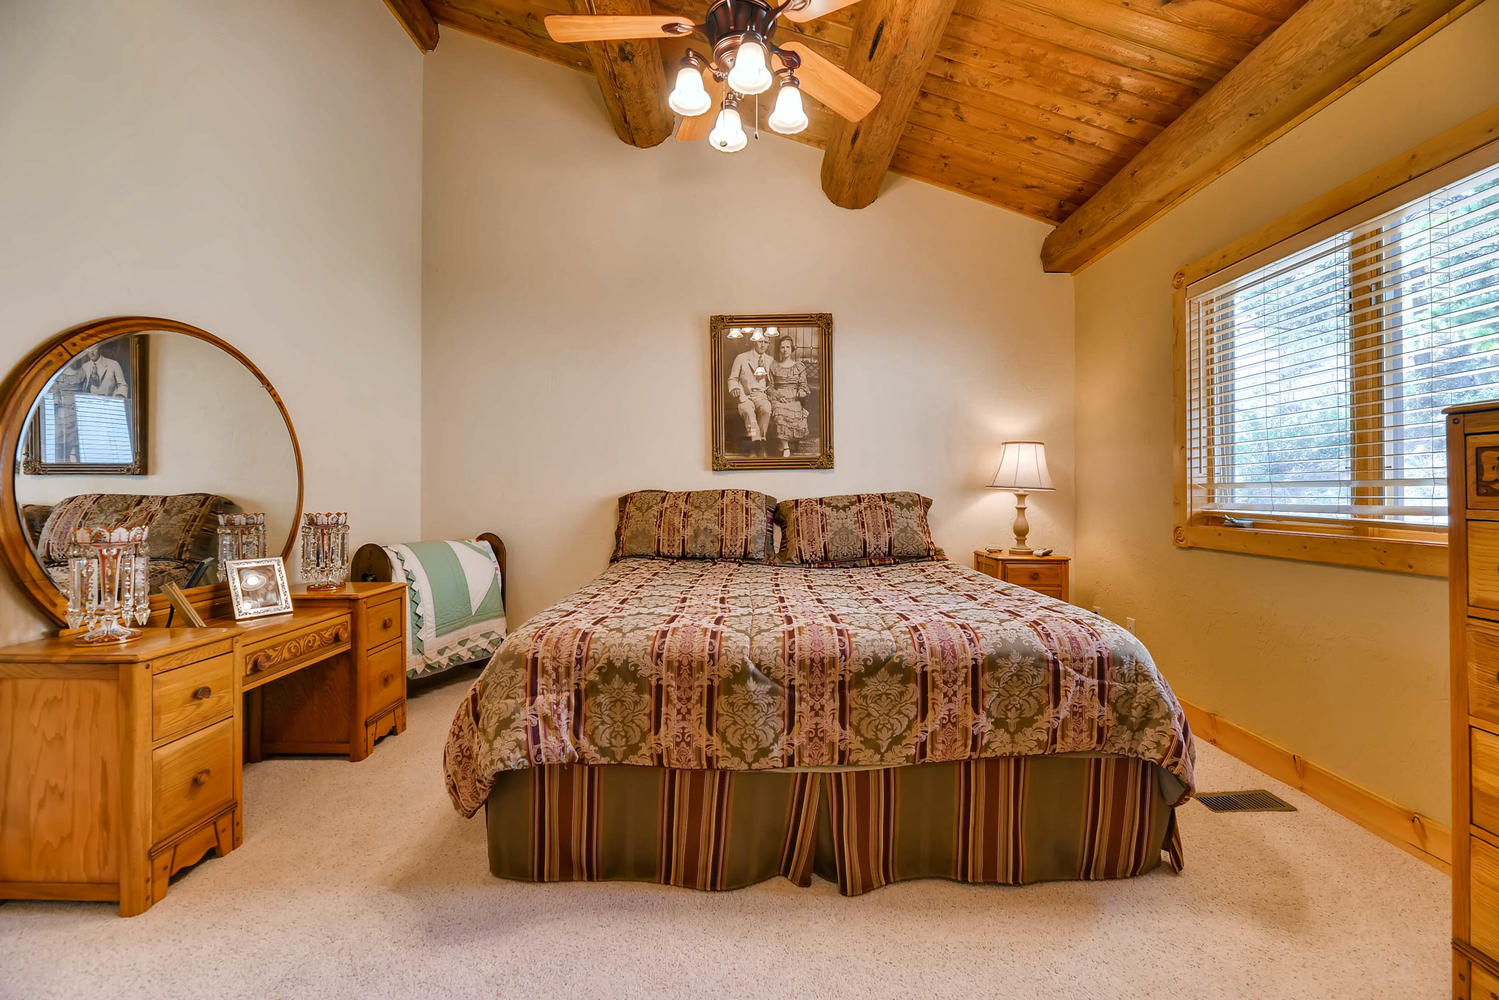 The first upper level bedroom has a king bed.